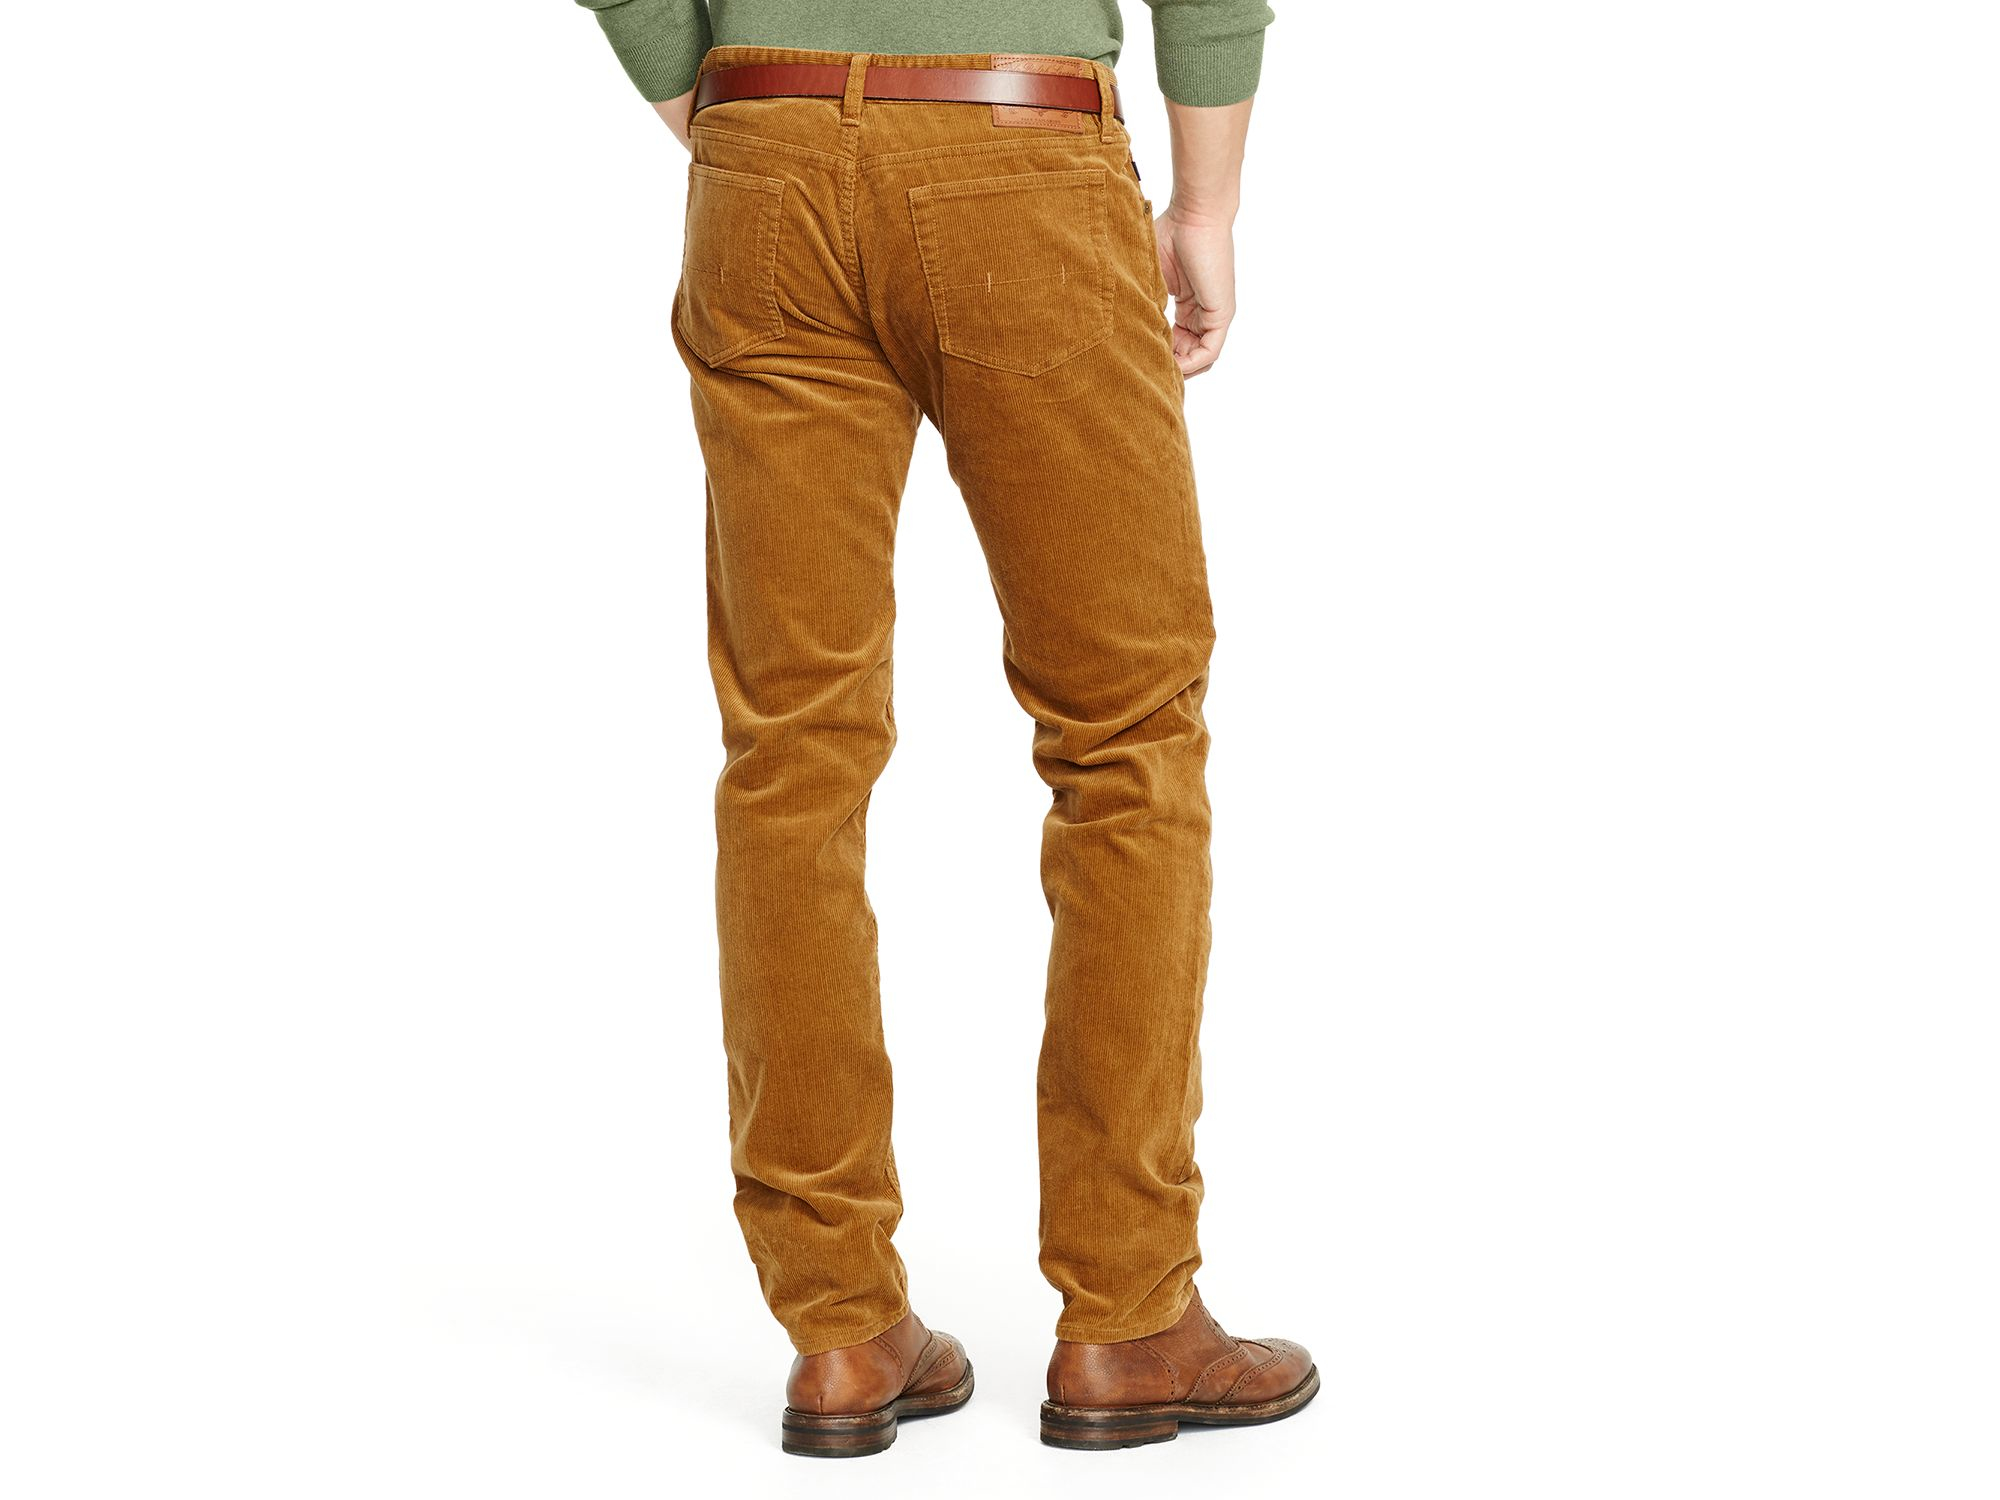 Corduroy Pants Style Guide For All Genders